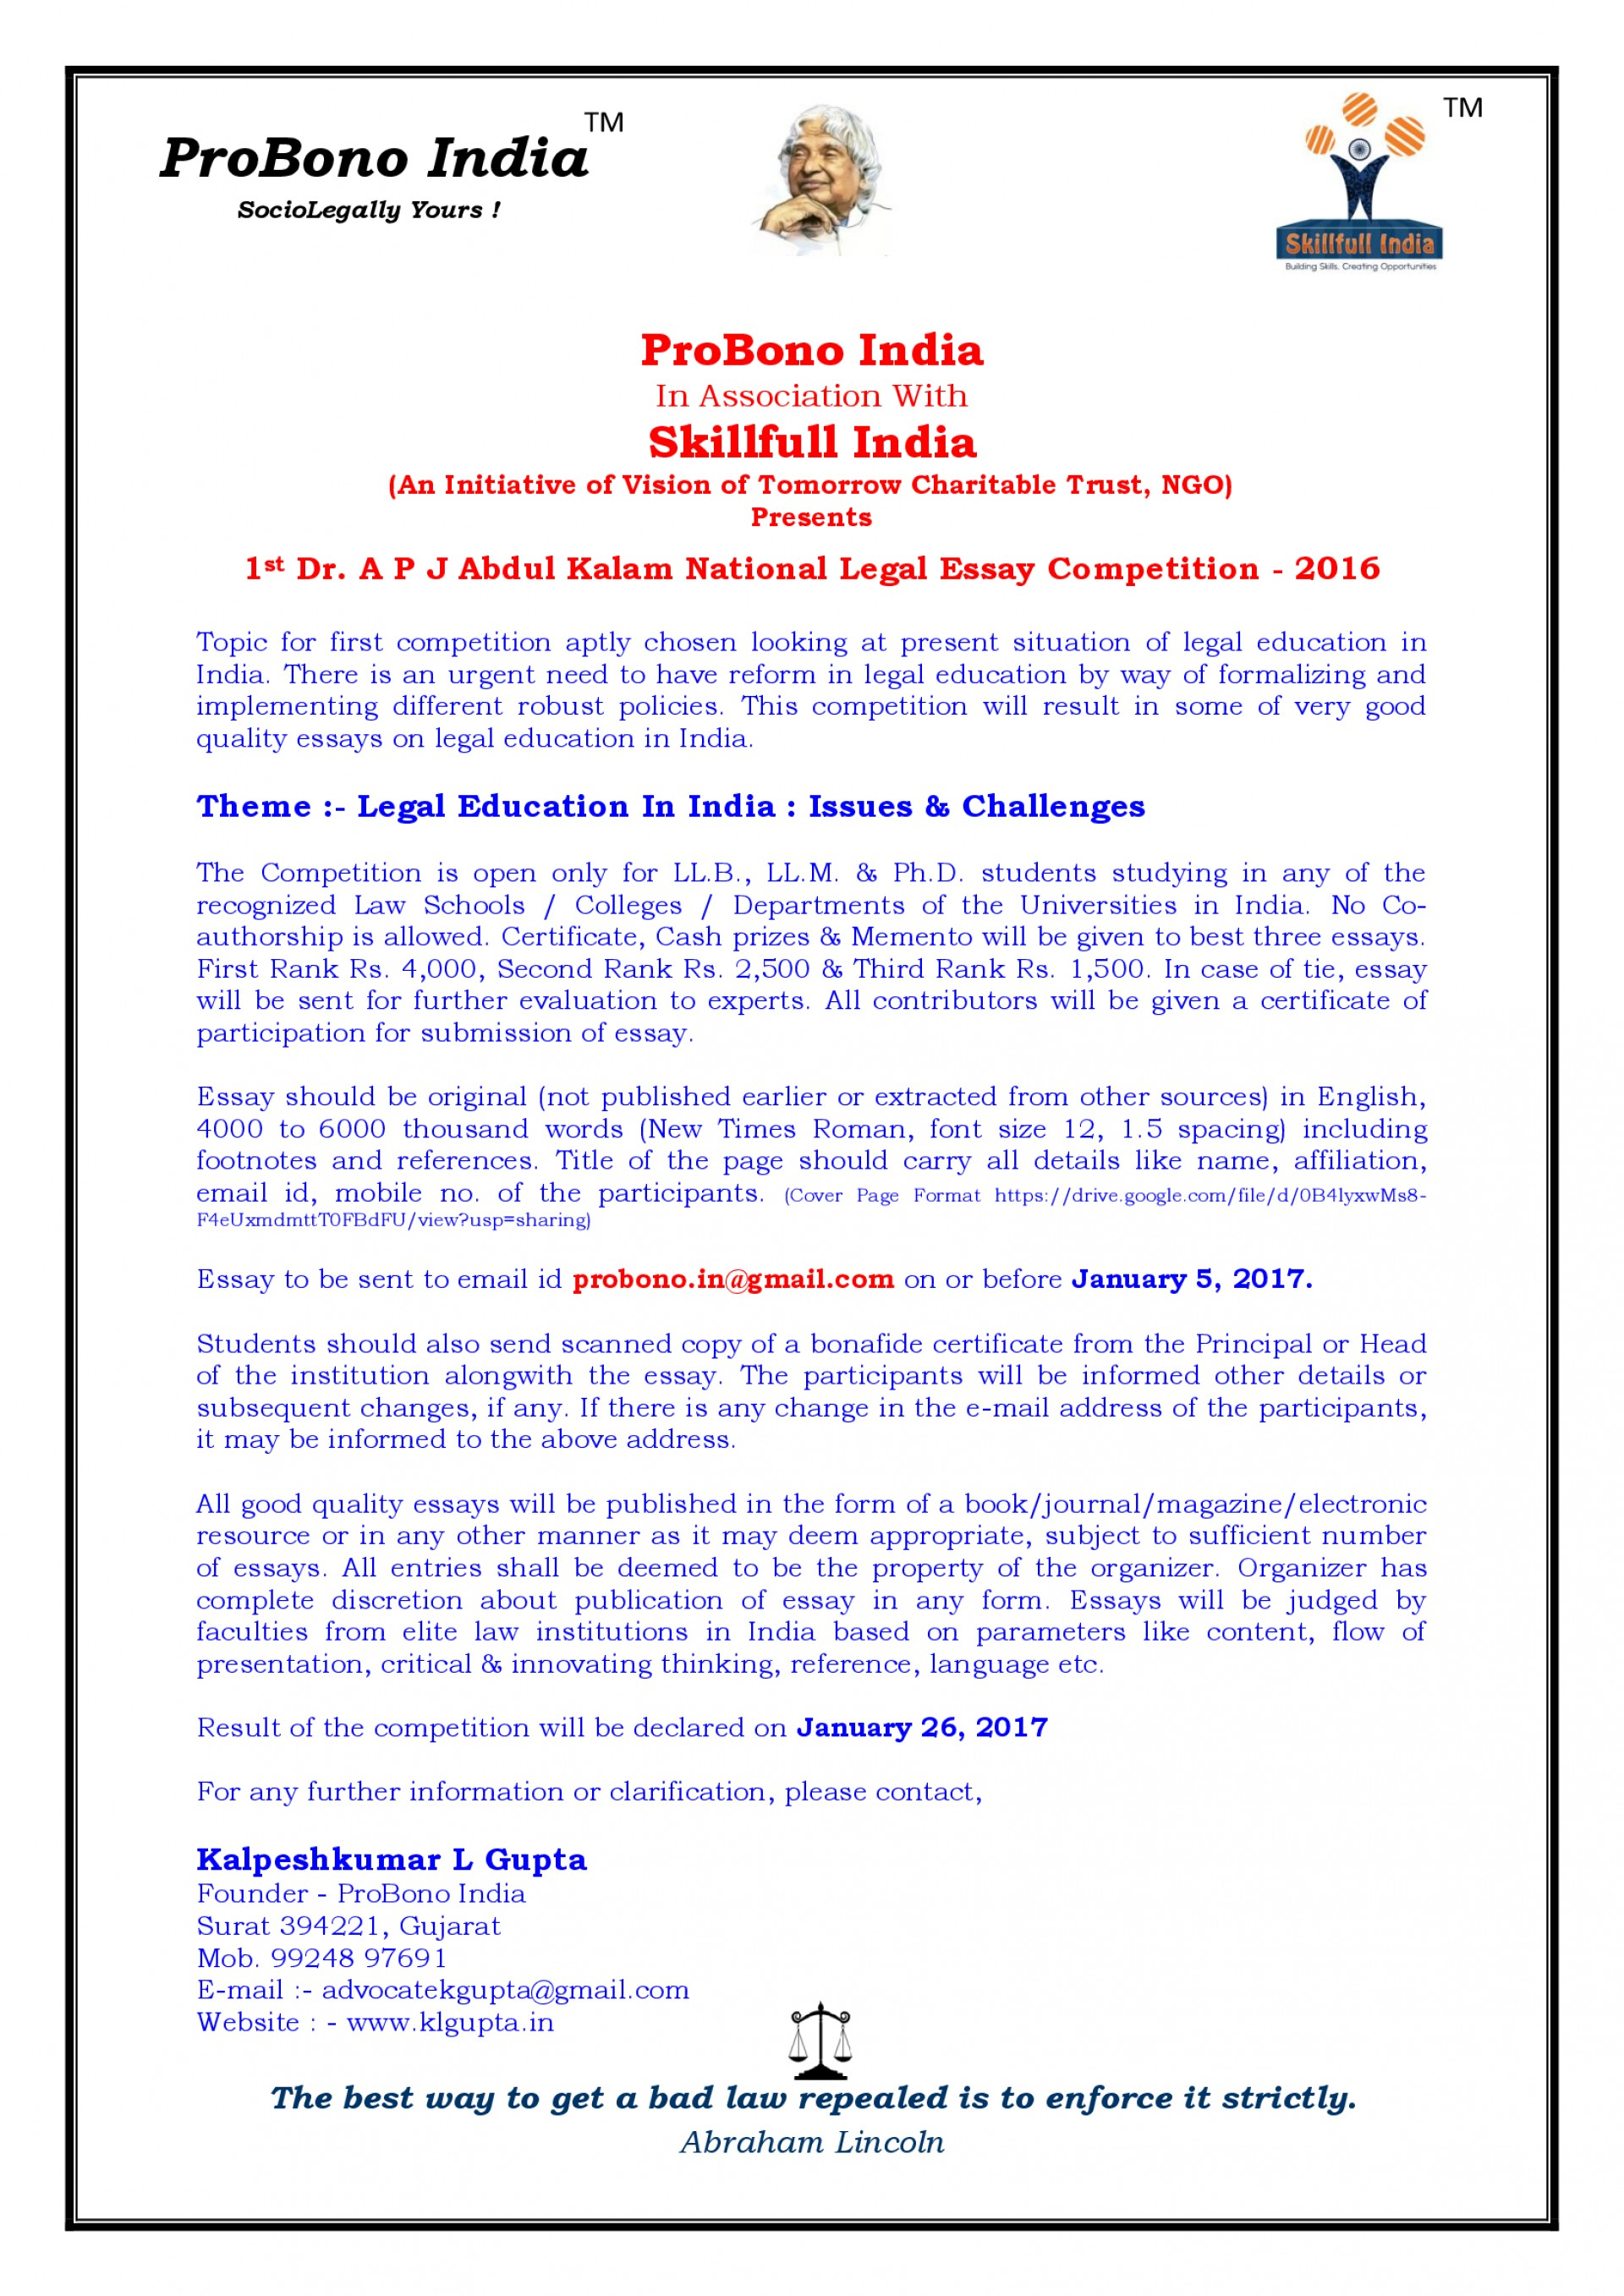 012 Essay Example Font Size 1st Dr P J Abdul Kalam National Level Competition With Skillfull Stunning Format College Apa 1920